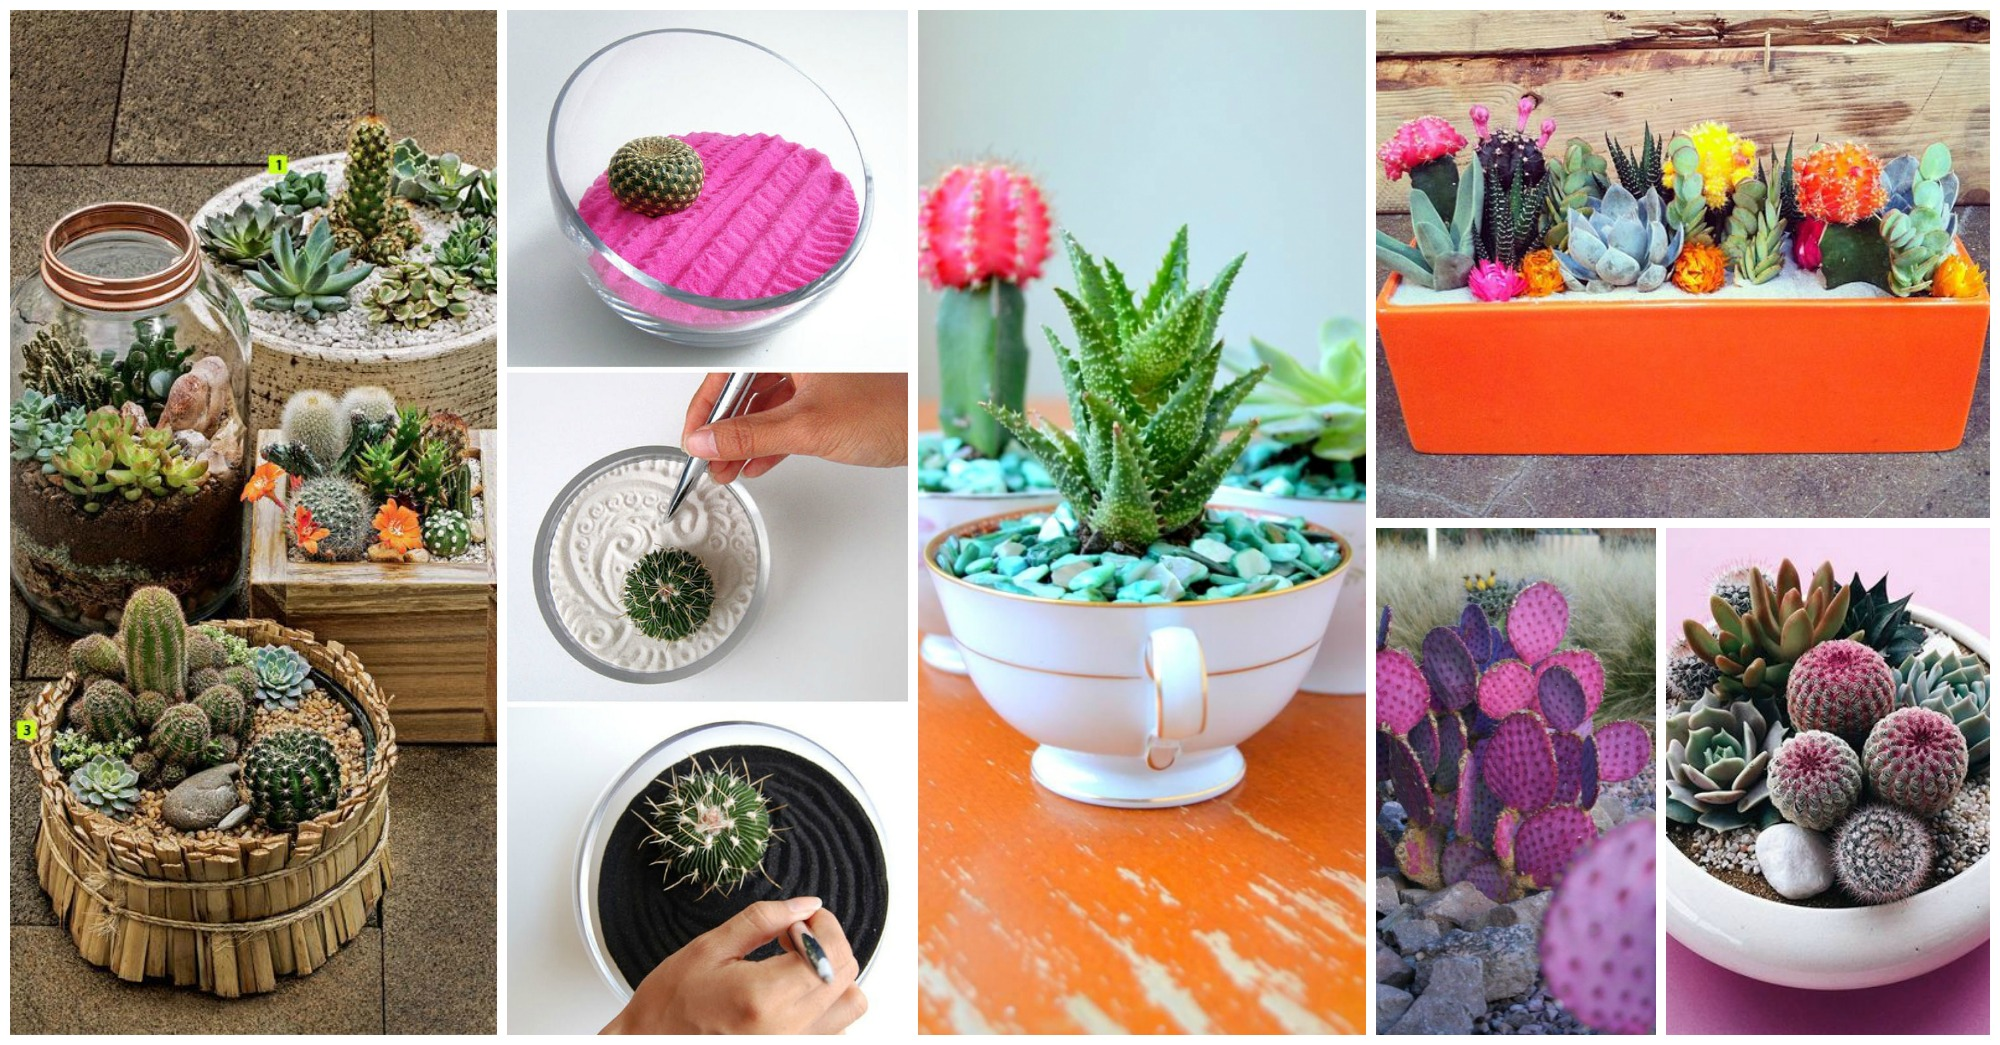 15 Awesome Mini Cactus Gardens